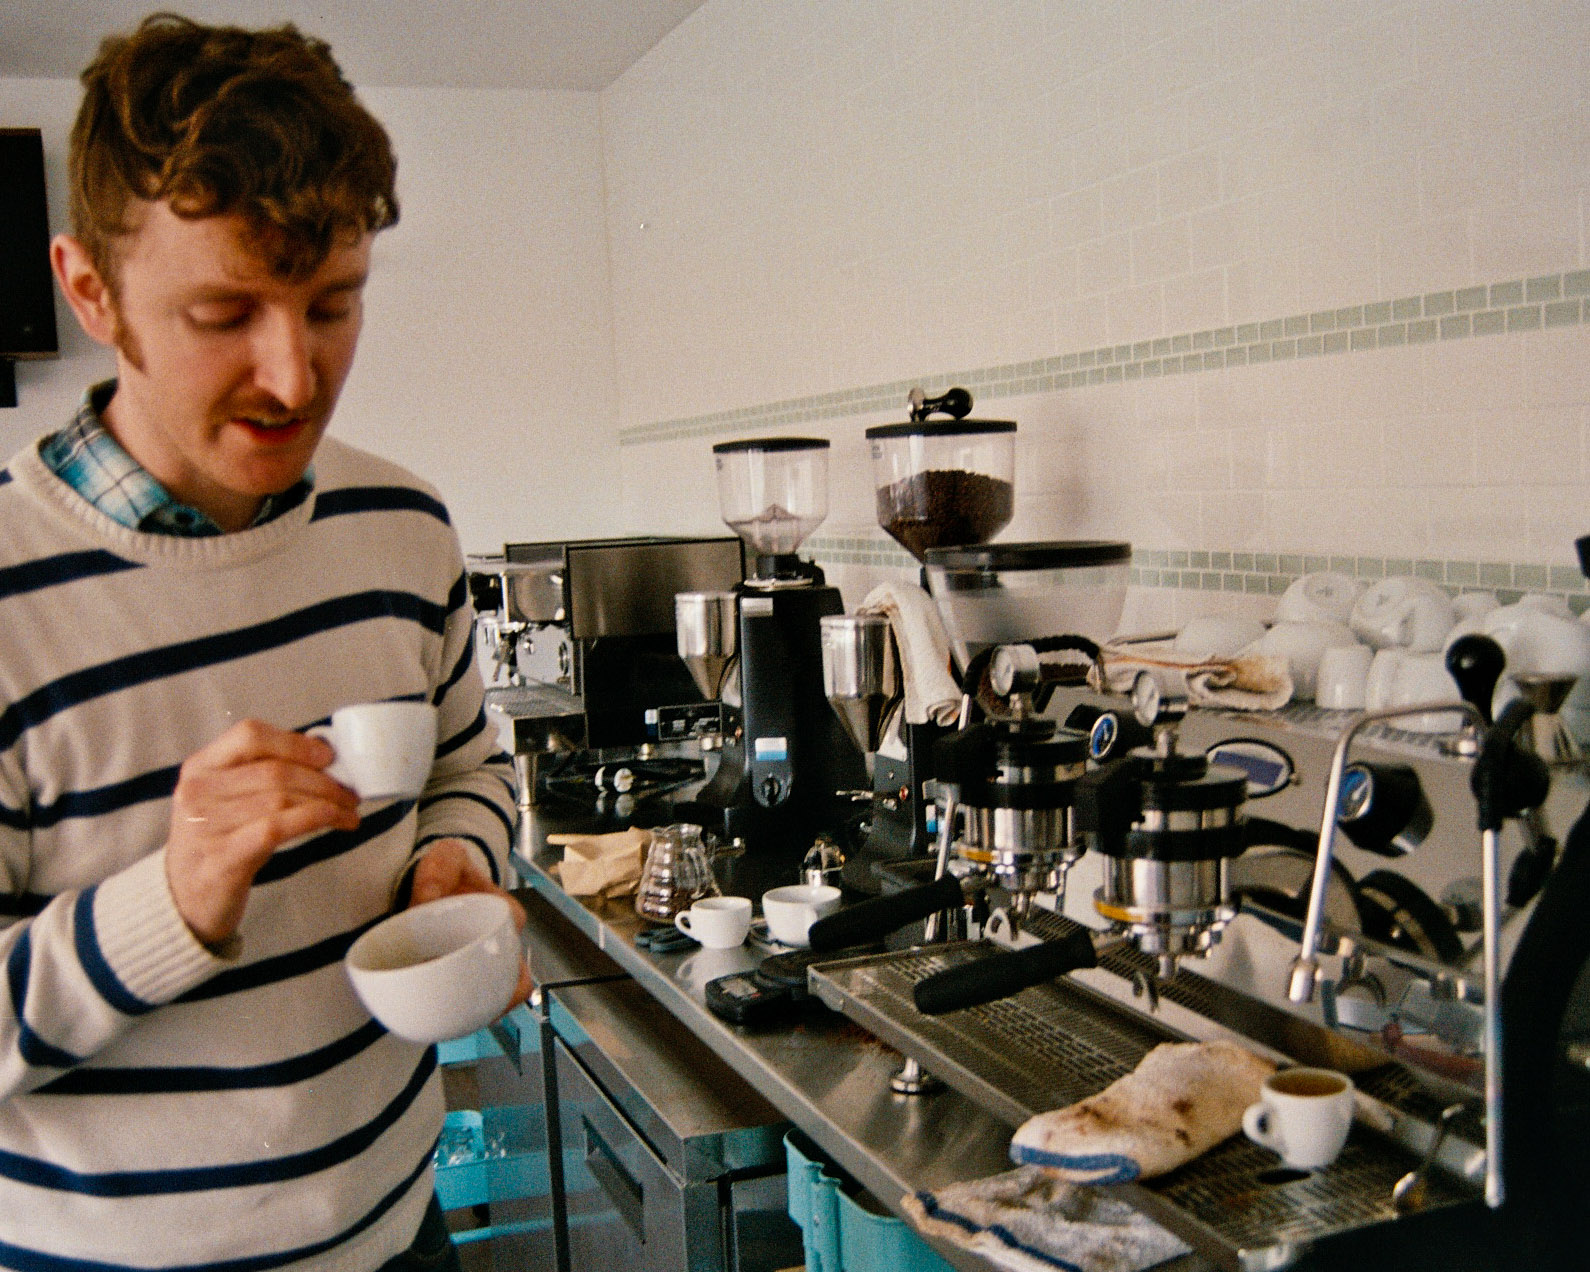 Caption: Brian Gelletly training for the 2013 Barista Championship, Credit: Alex Lewis